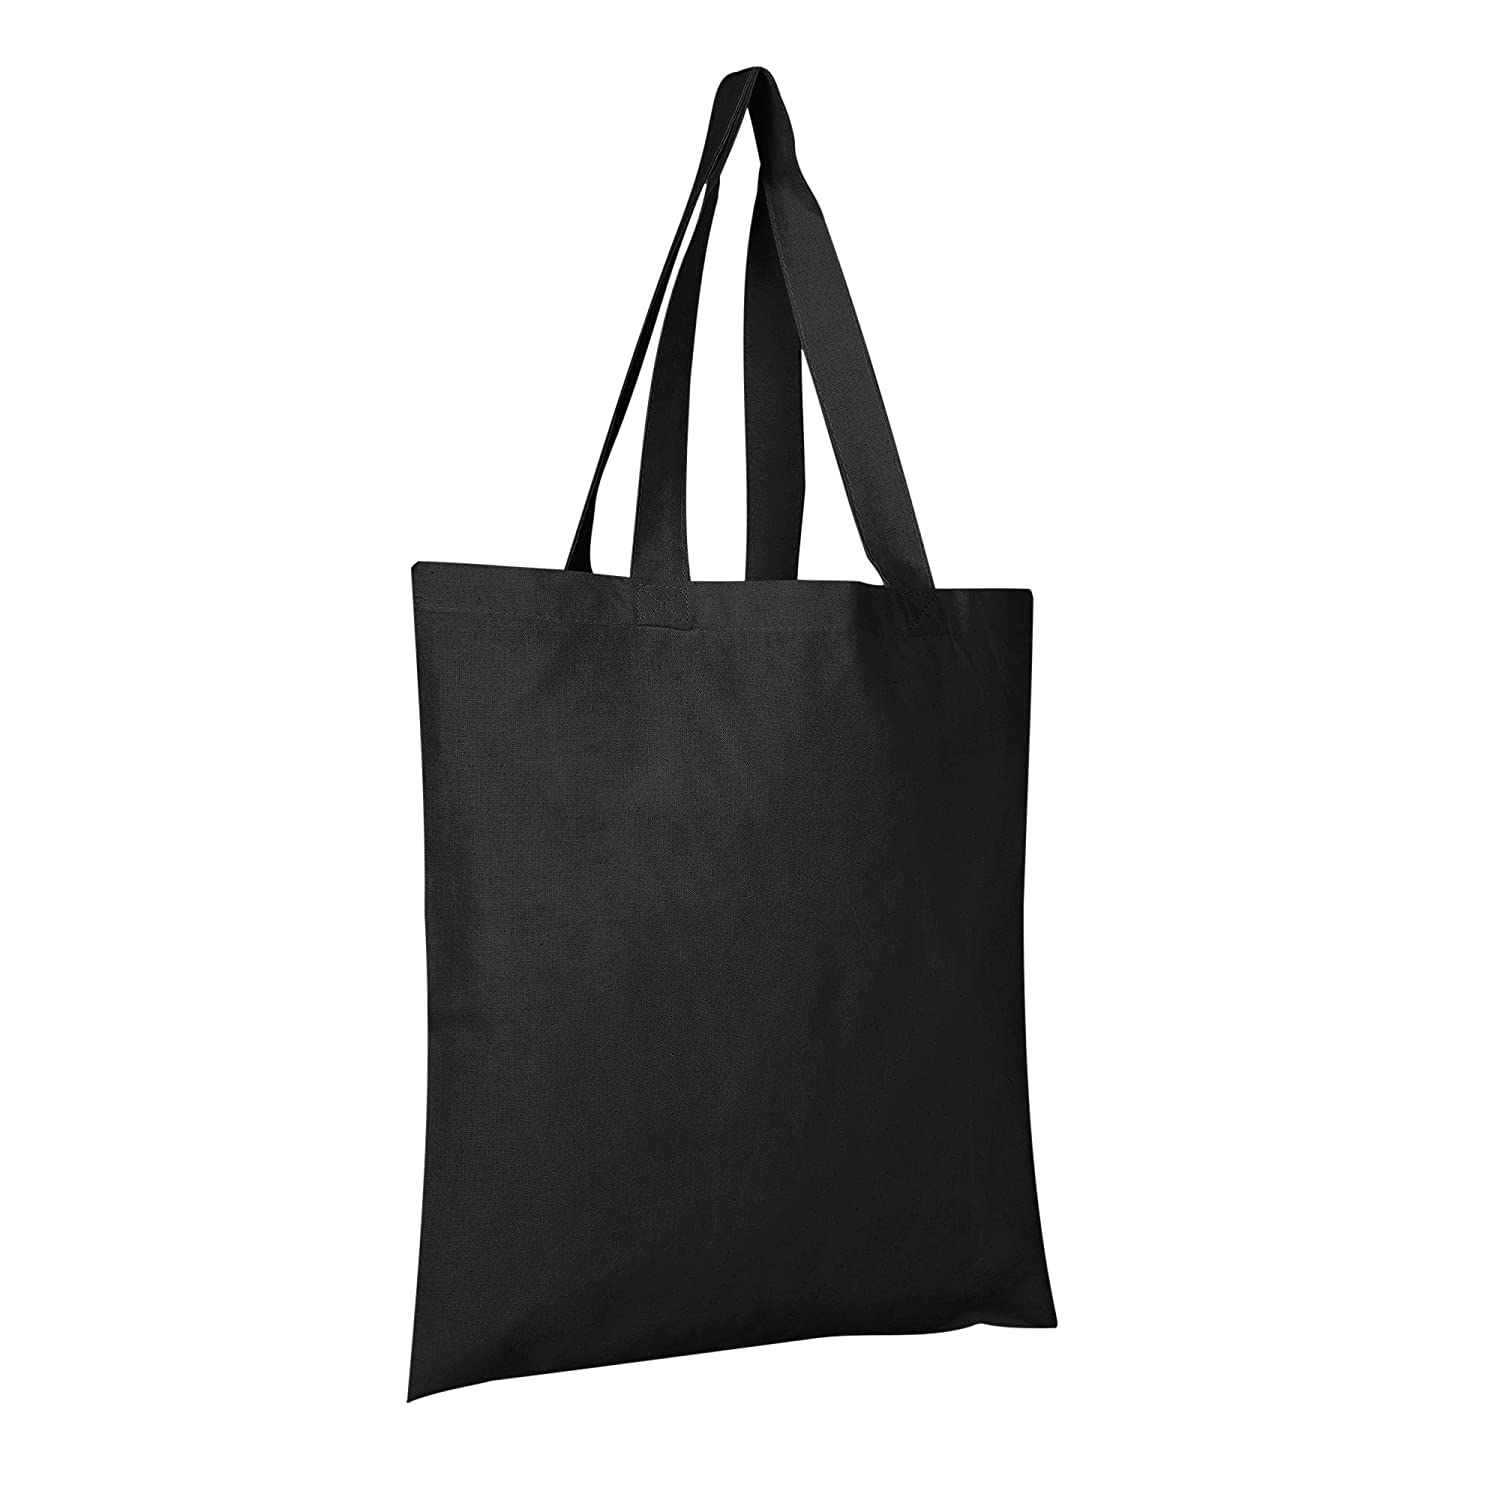 BagzDepot 12 Pack Durable Cotton Canvas Reusable Blank 15inch x 16inch  Standard Size Grocery Plain Tote Bags with 21 inches Supportive Fabric  Handles No ... d249a8f3eb75